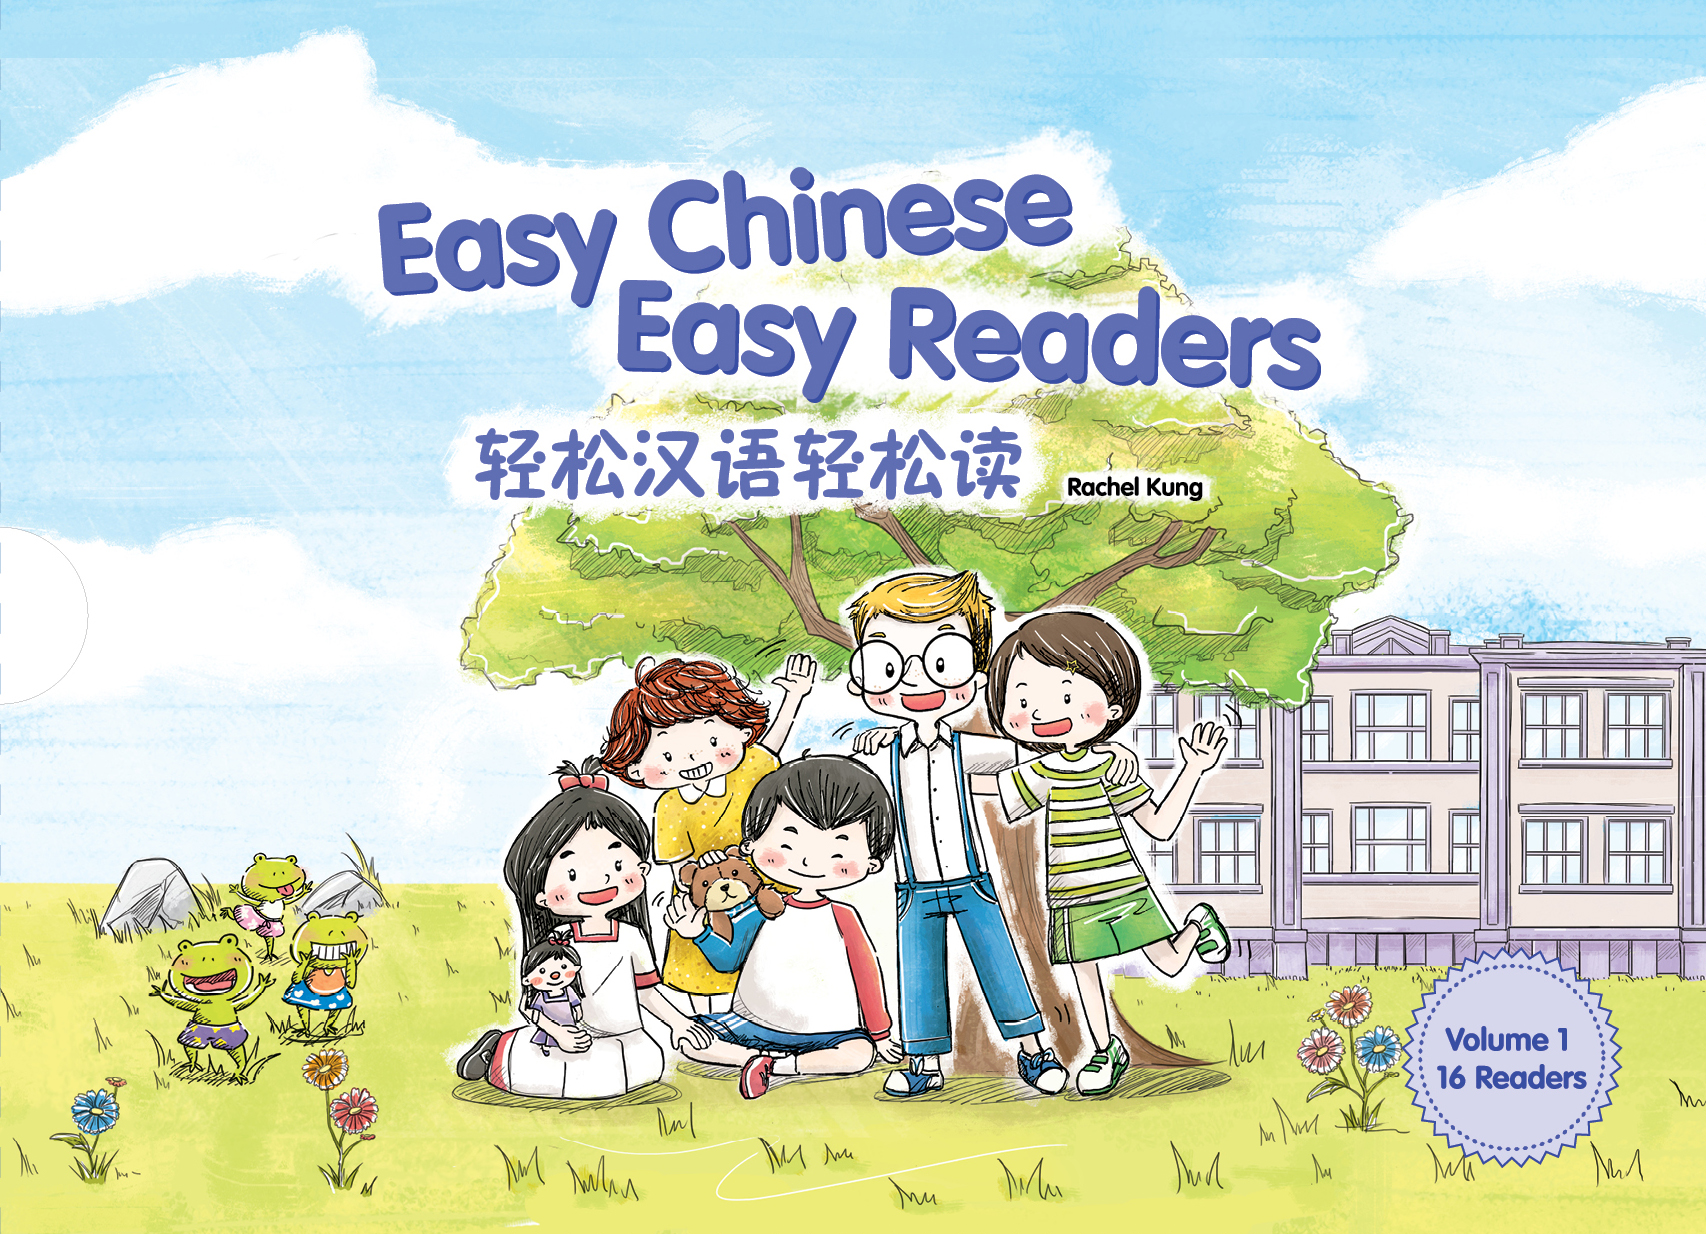 Easy Chinese Easy Readers Volume 1